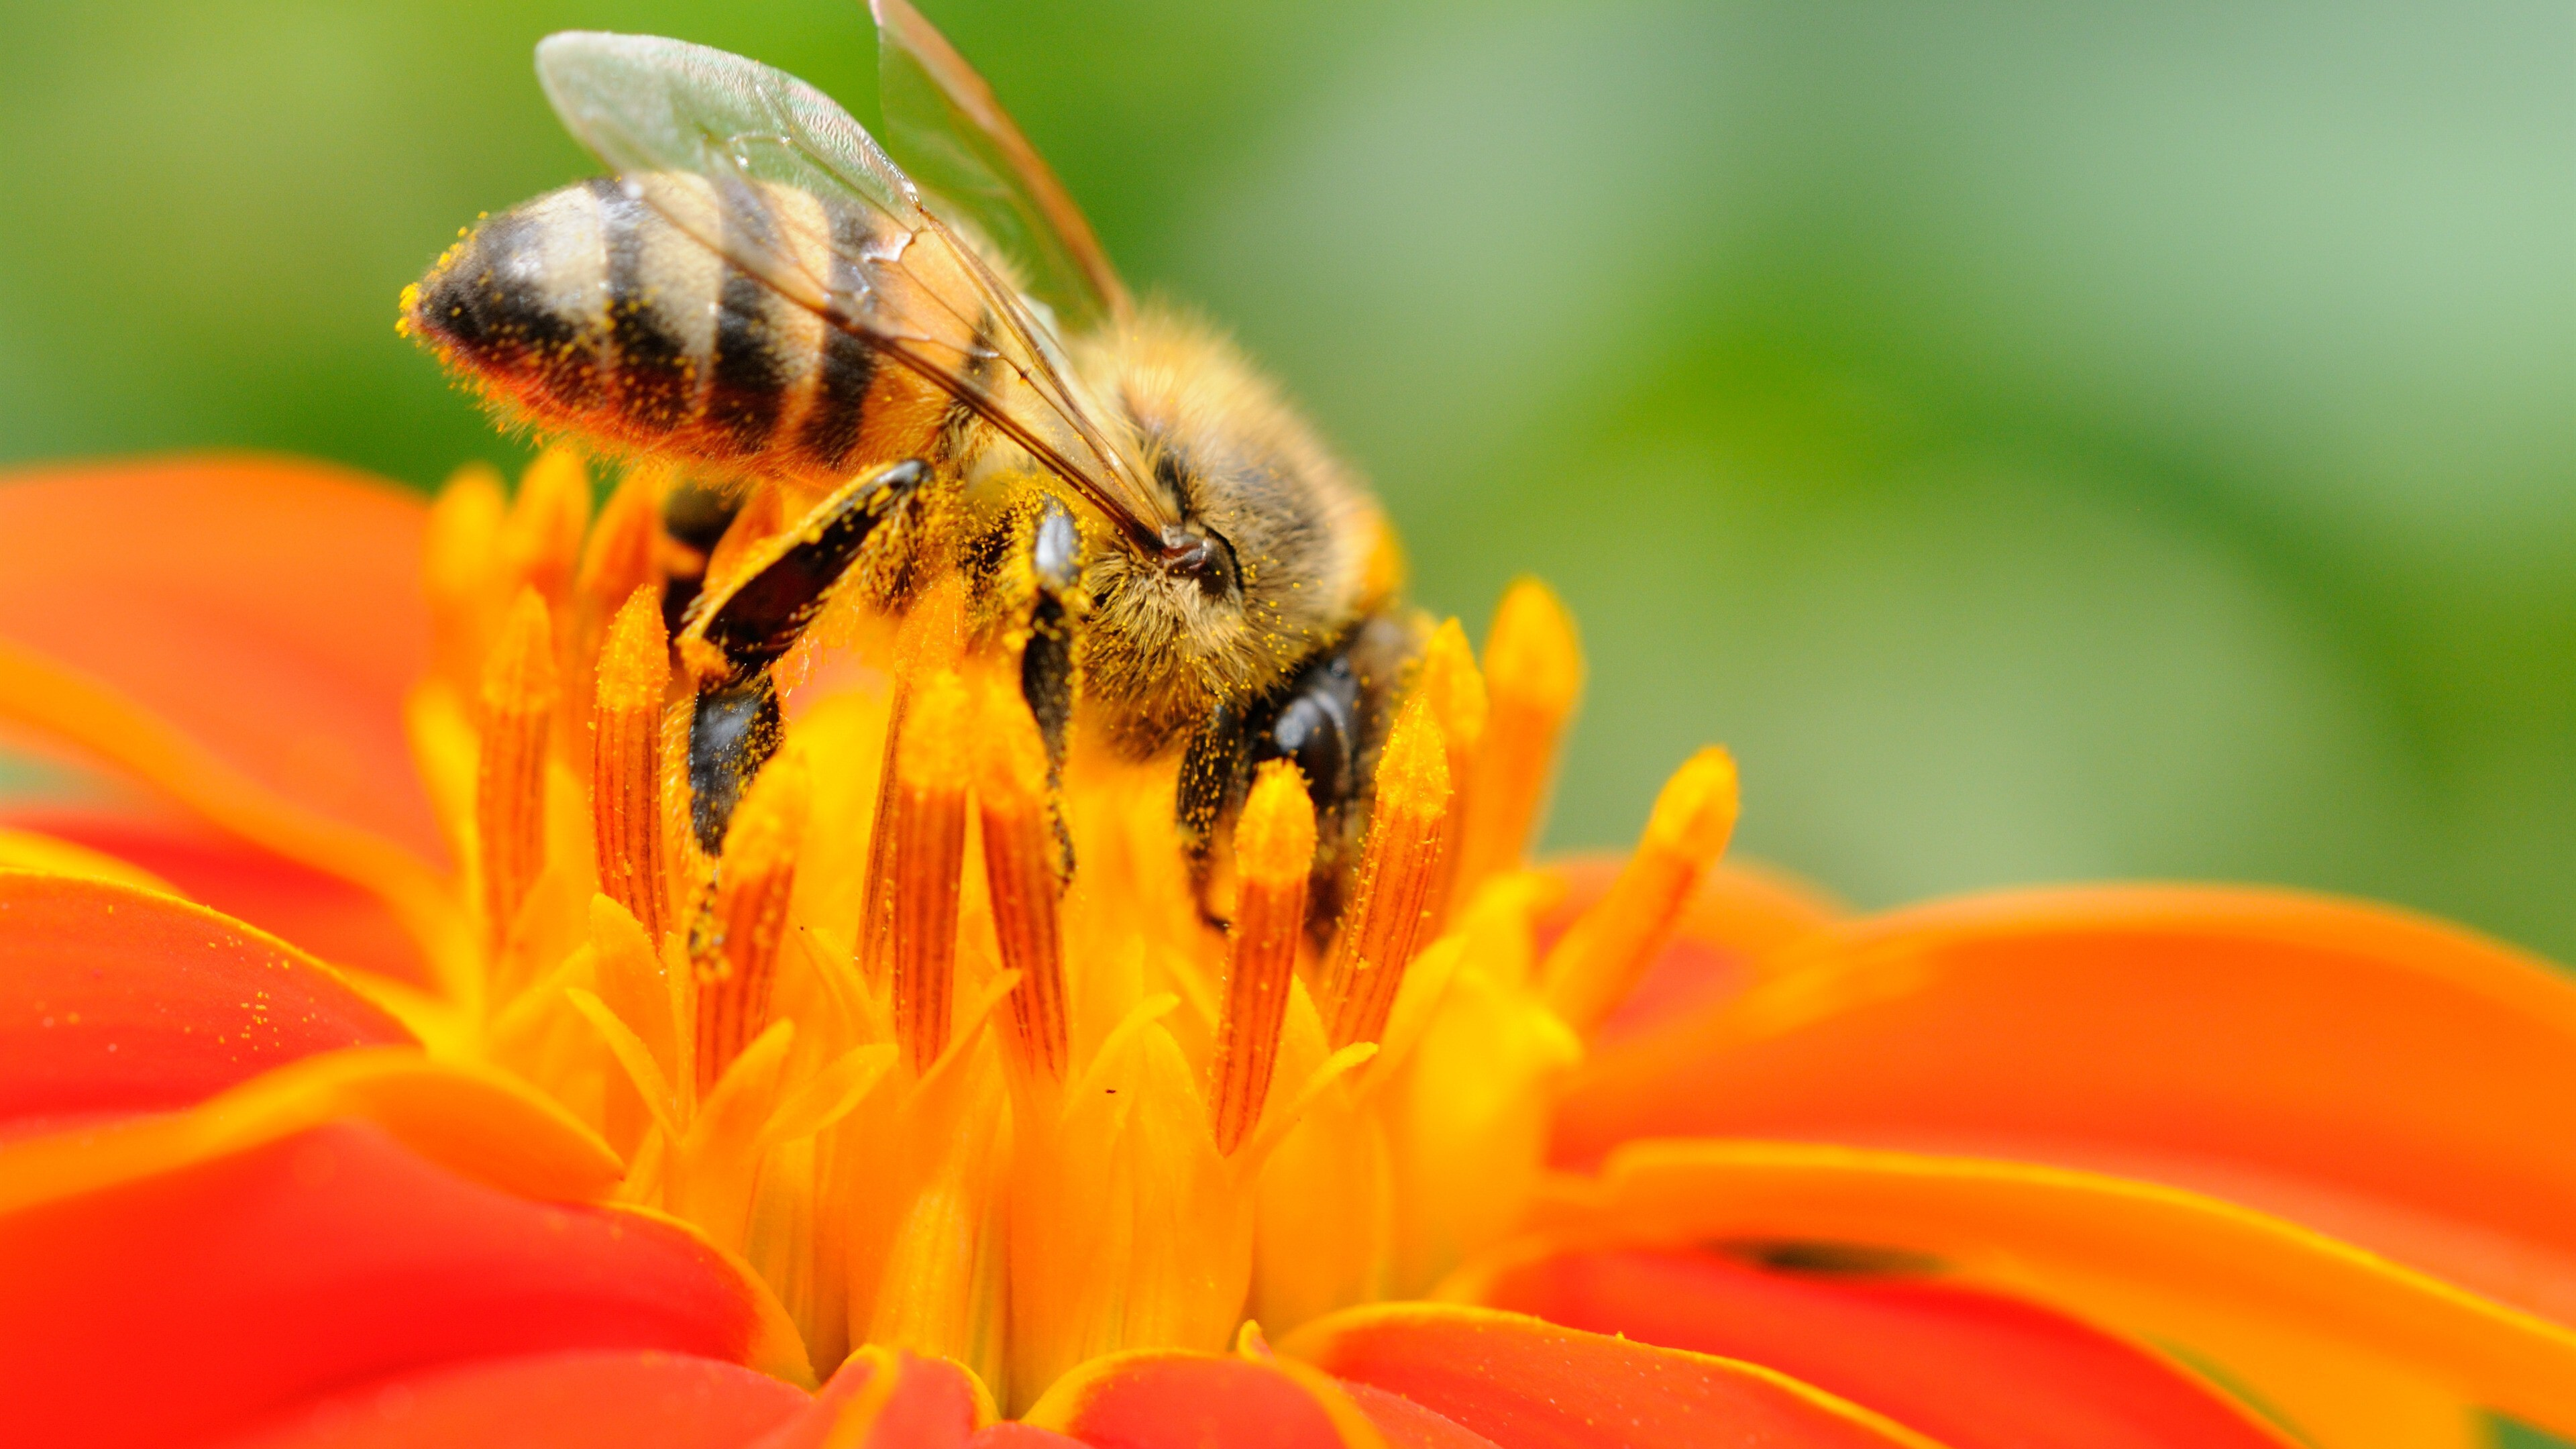 Bee Eating From Orange Flower | HD Wallpapers